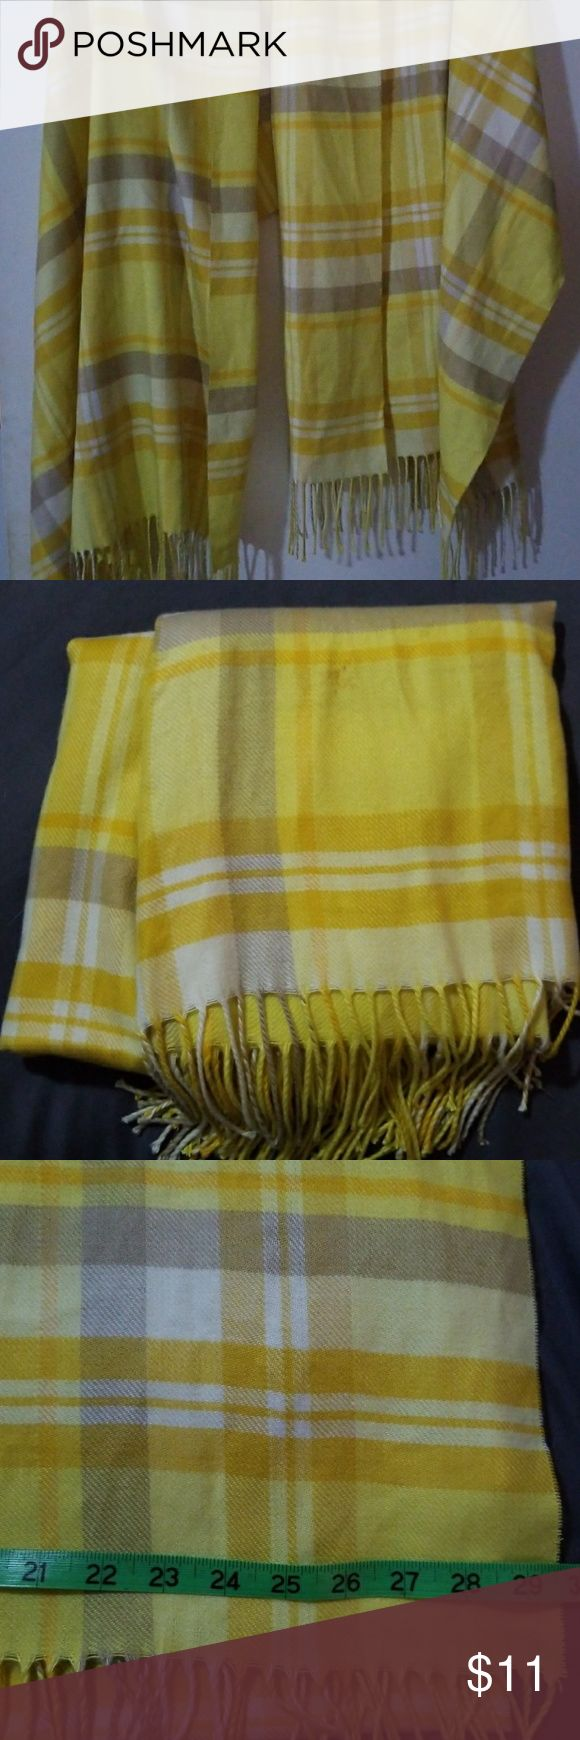 Plaid Scarf Soft Yellow, Tan, Cream Scarf Old Navy Accessories Scarves & Wraps